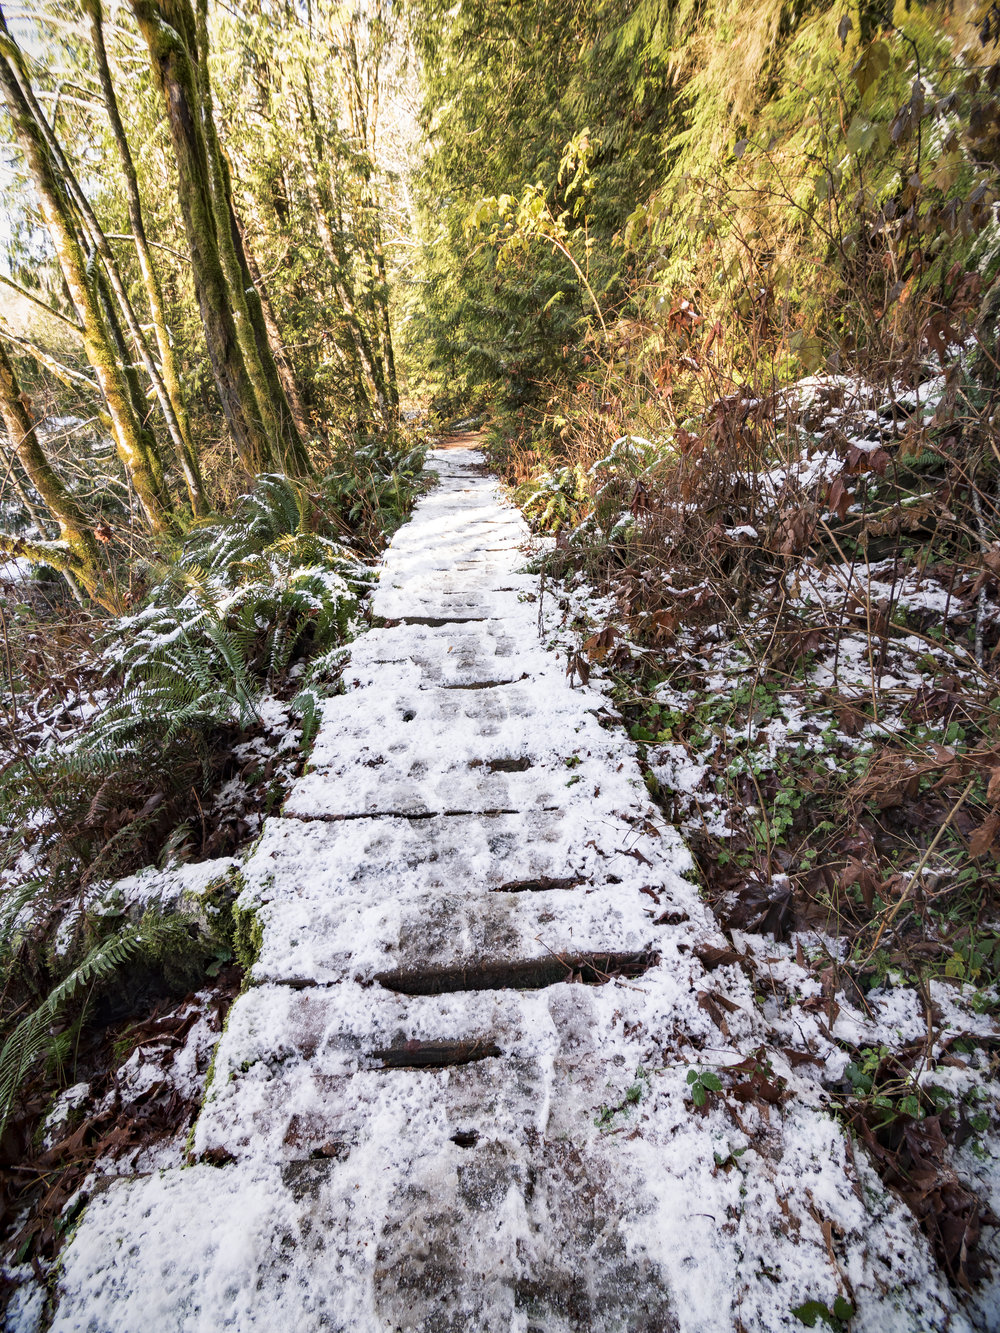 Wood Plank Pathway Covered with Snow on Hiking Trail in Forest